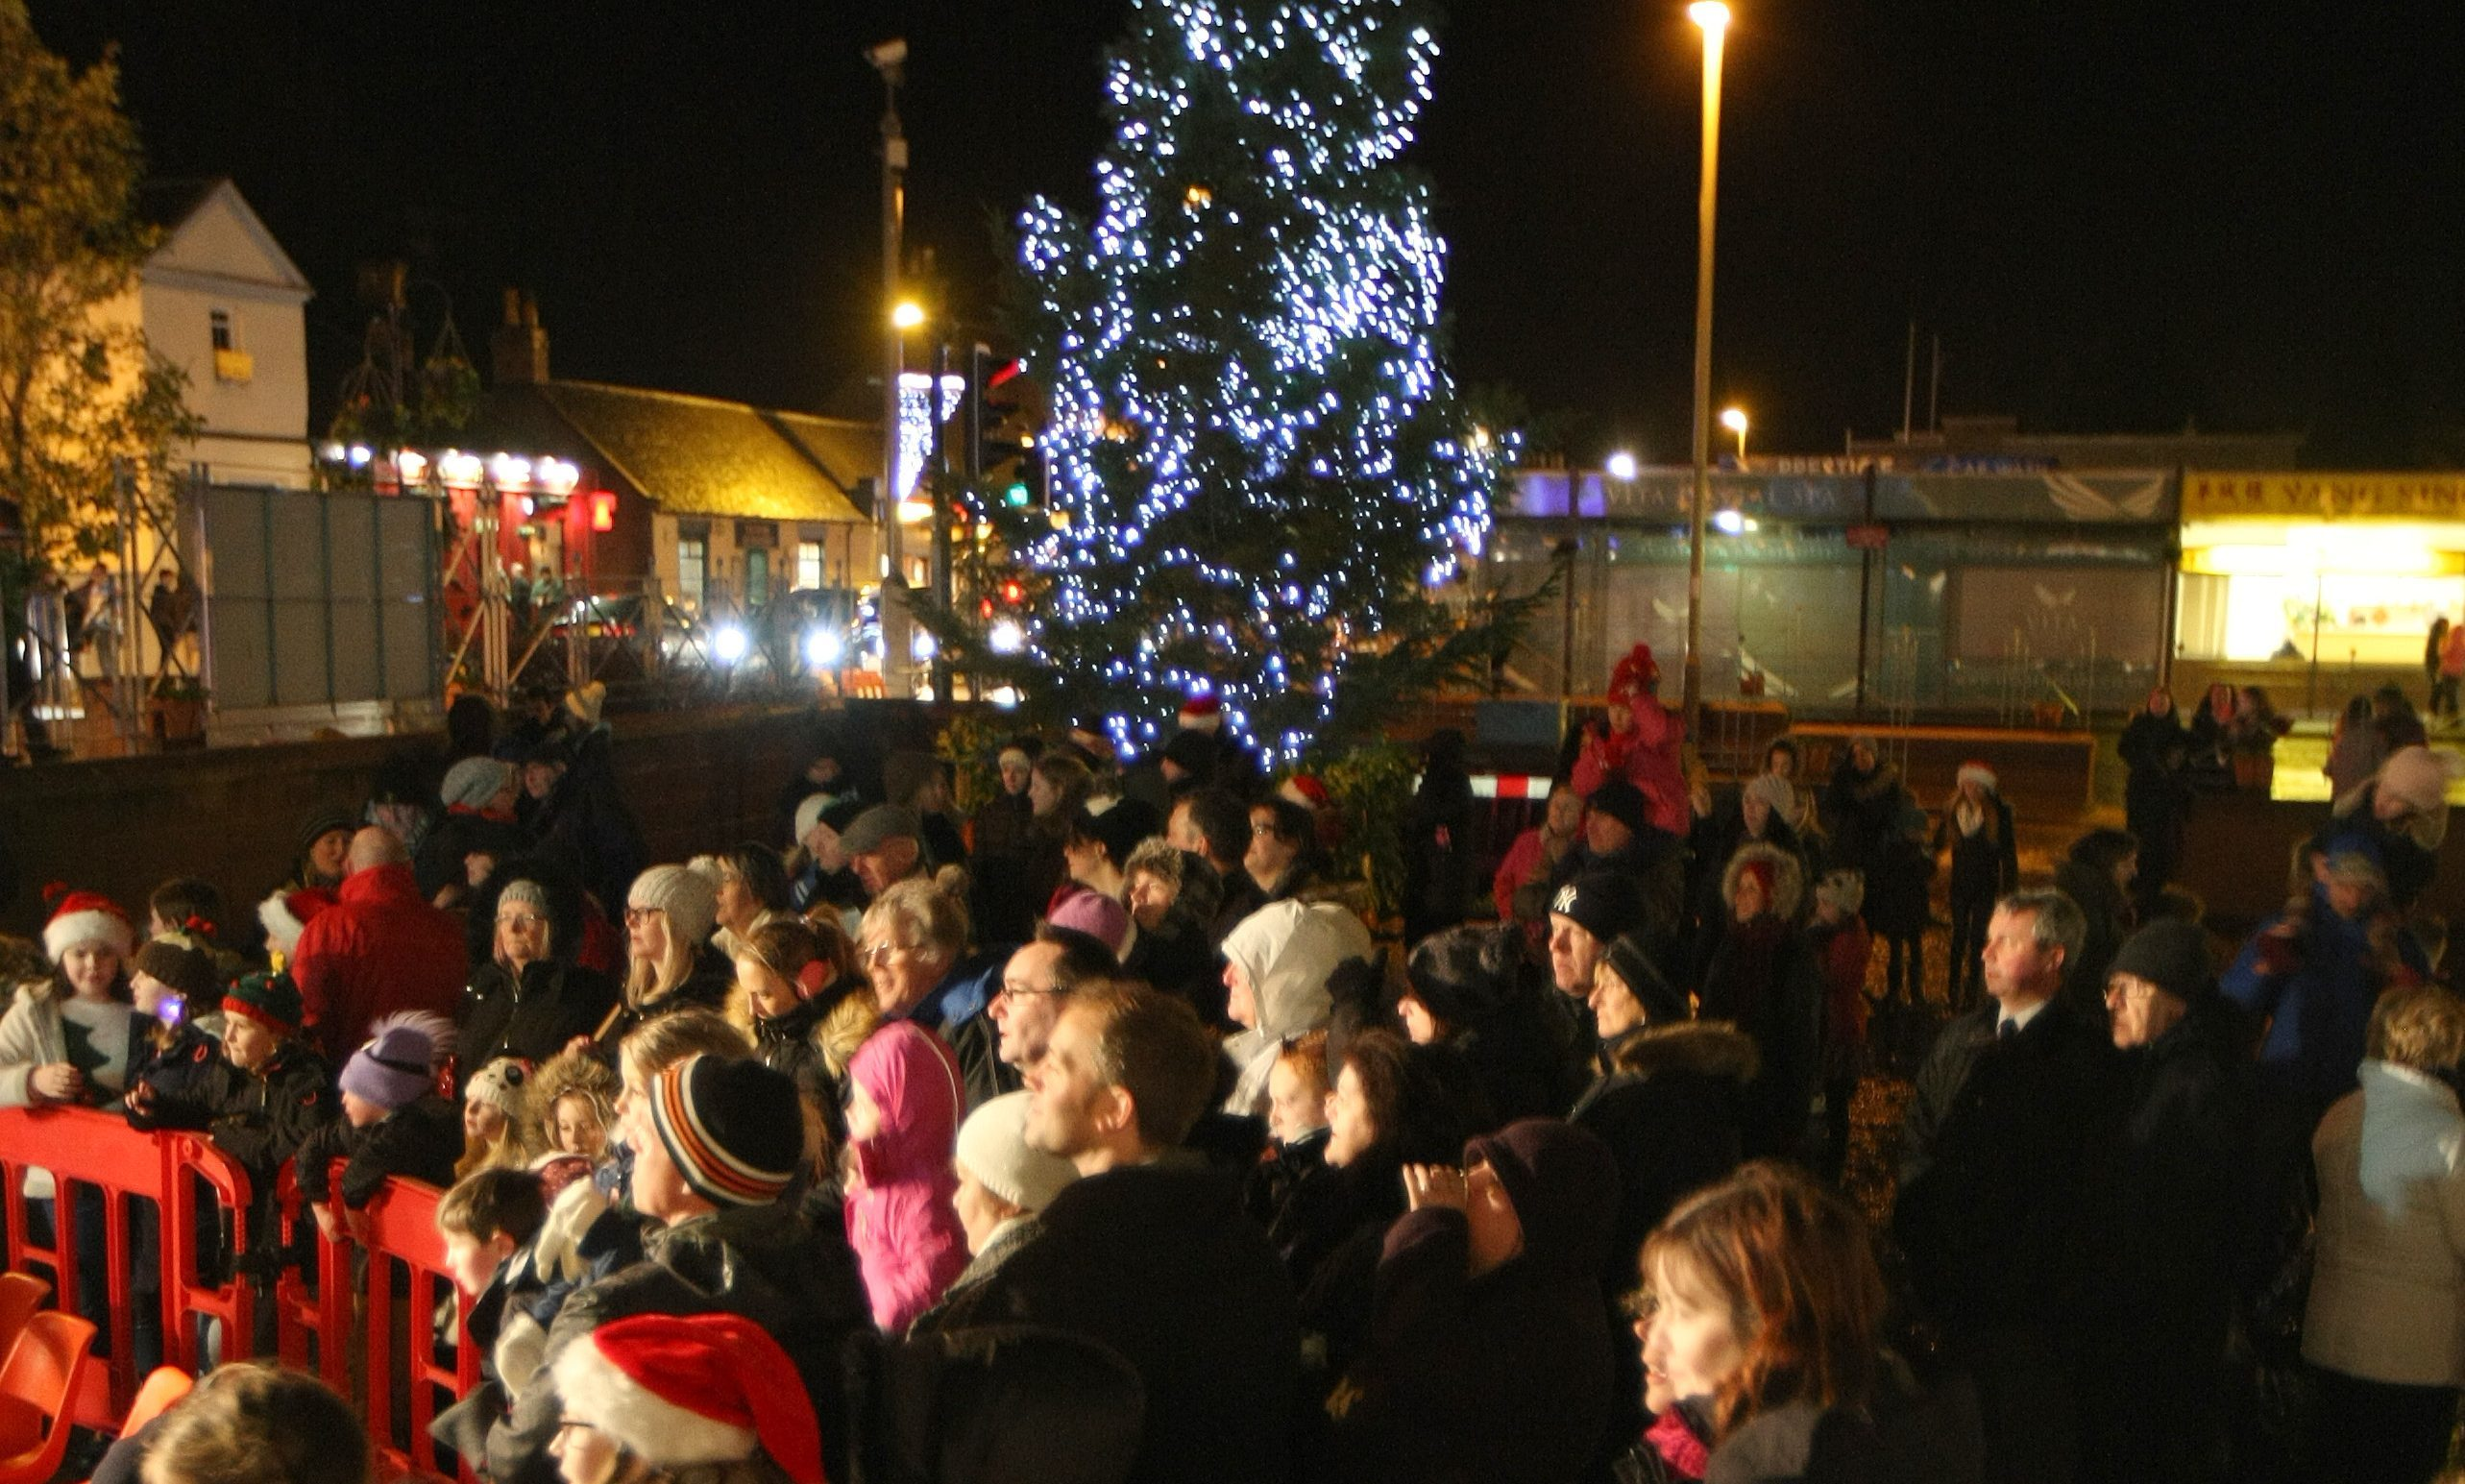 Crowd gathered for last year's Christmas lights switch-on in Monifieth.